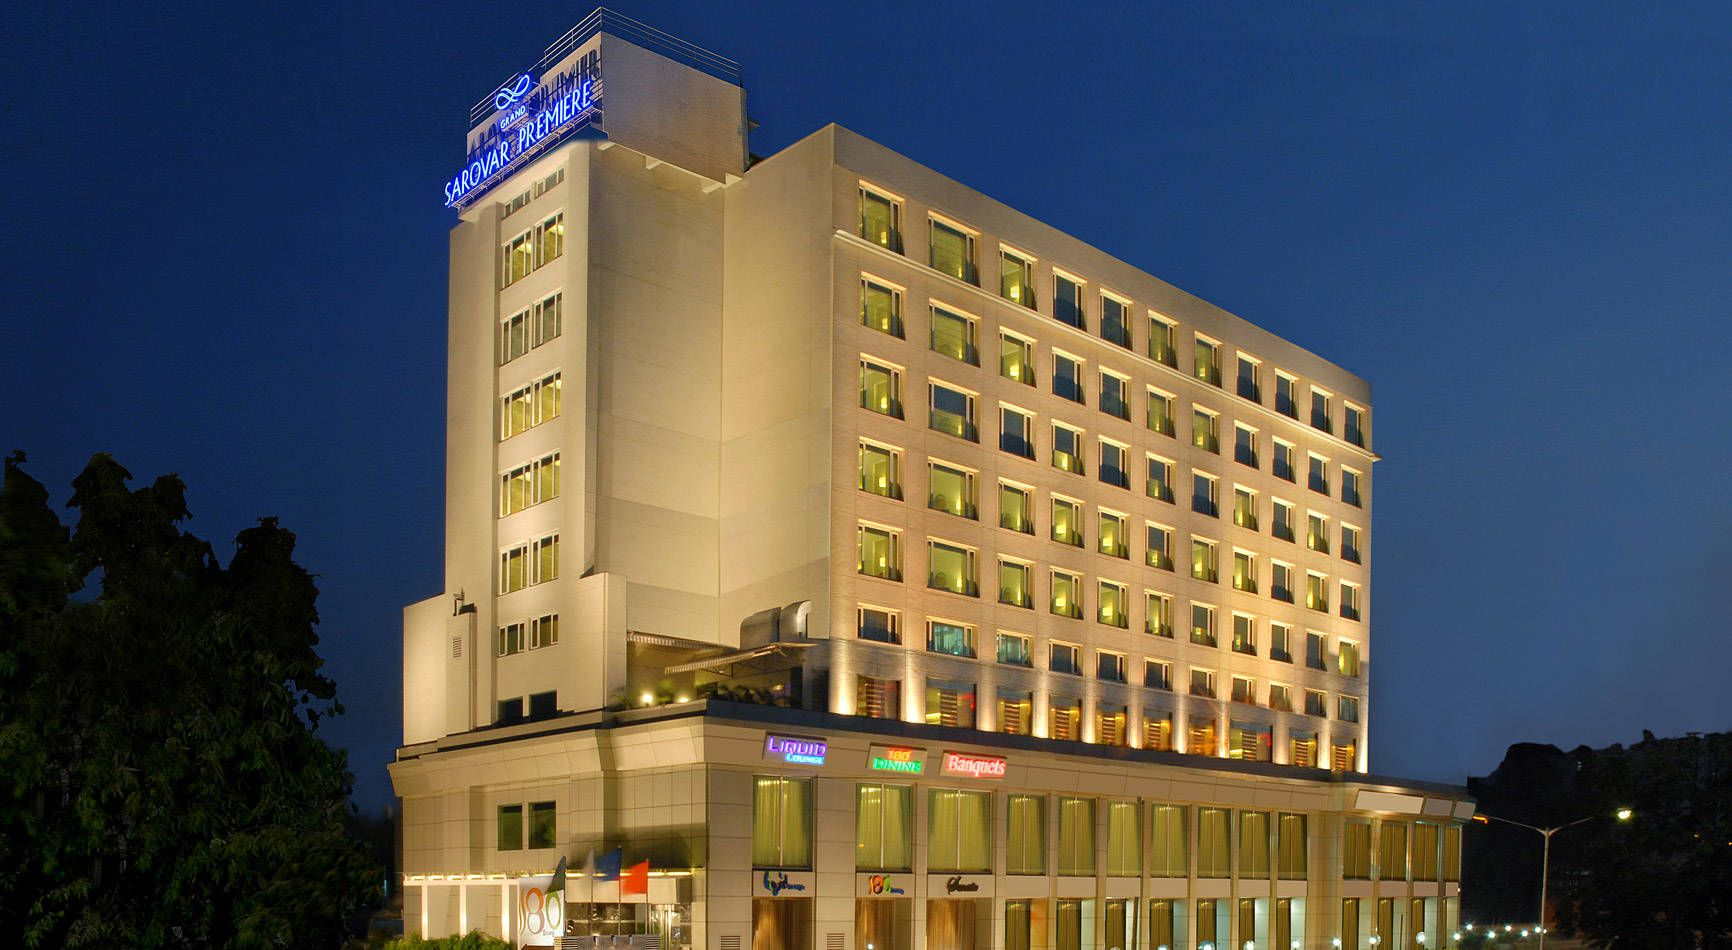 Hotel Grand Sarovar Premiere Mumbai Is One Of The Best 4 Star Hotels In Near Airport With Excellent Location